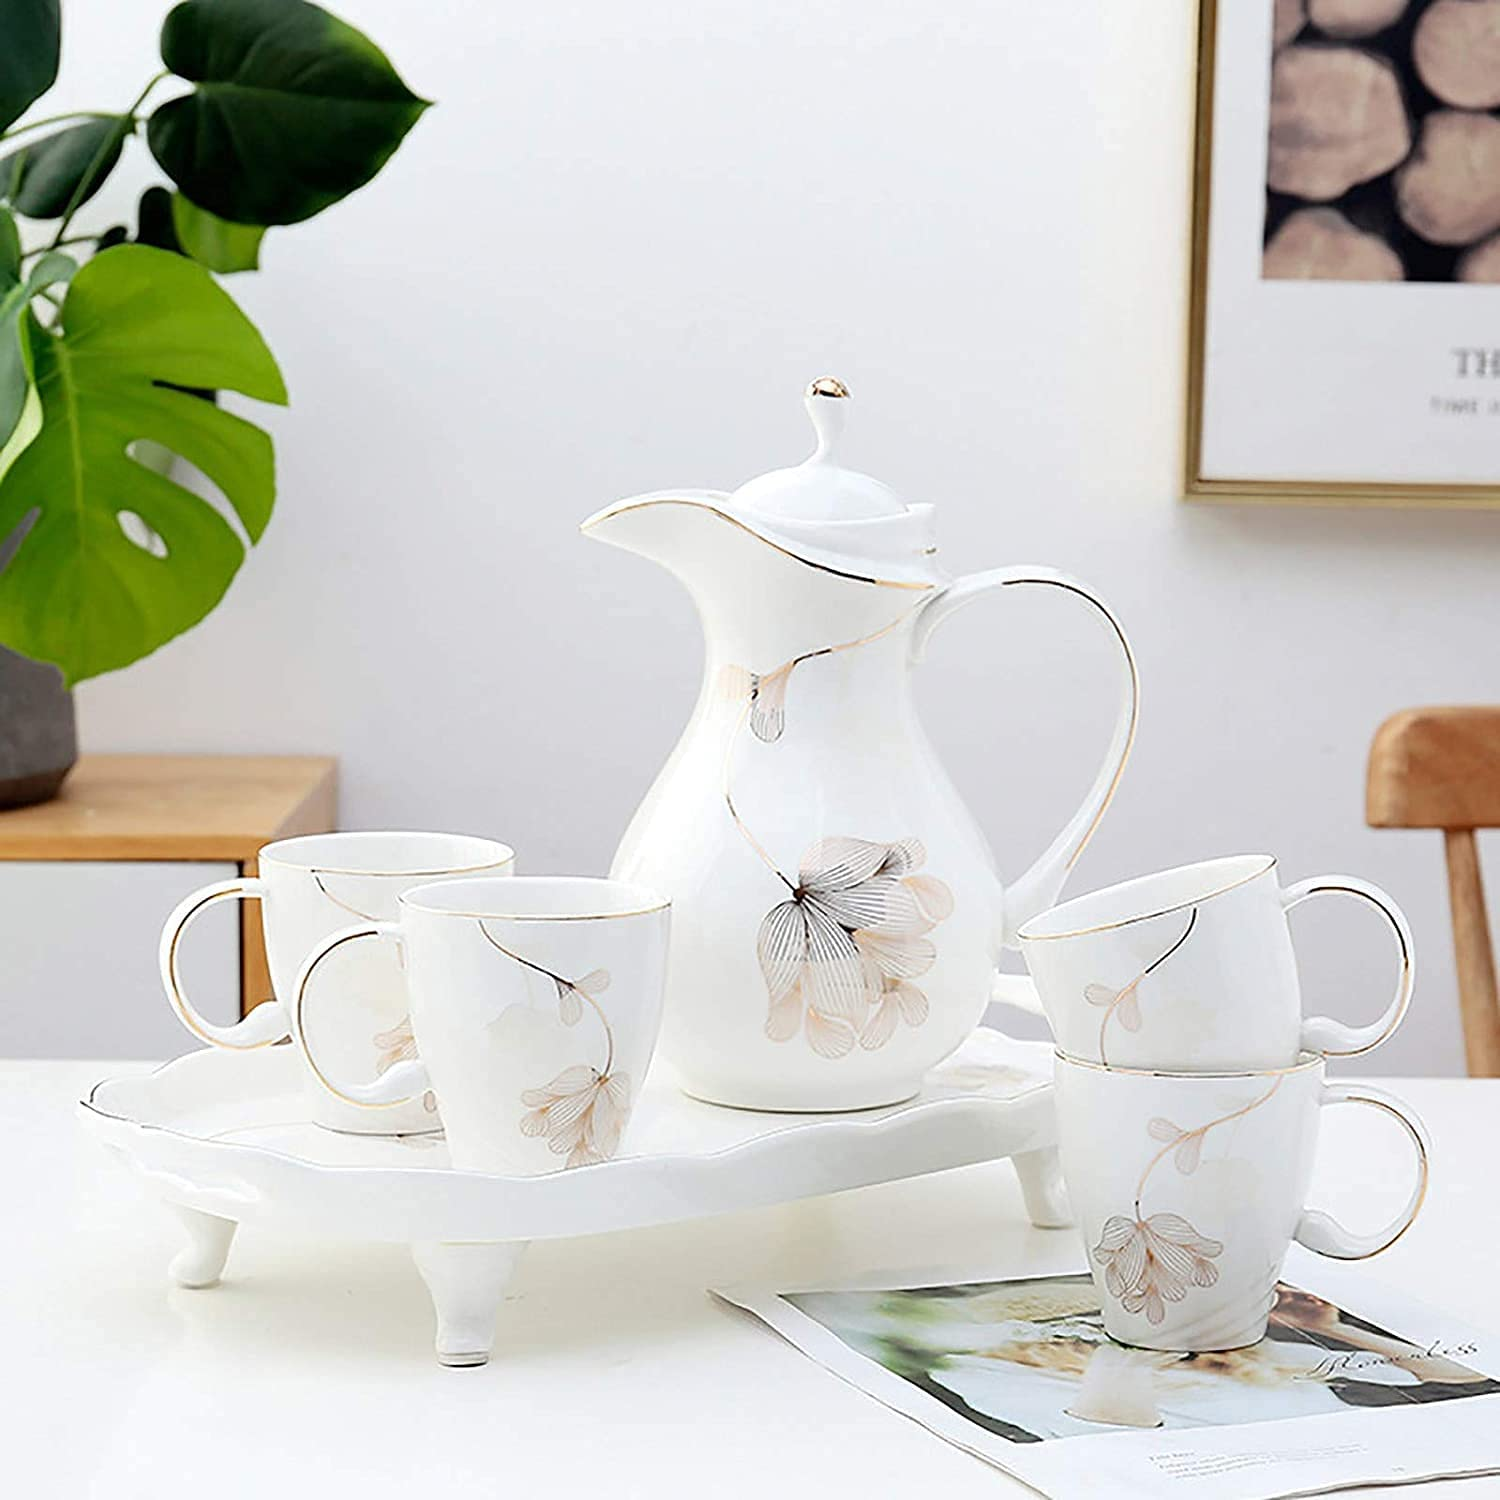 Max 86% OFF TEAYASON European-Style Ceramic Coffee Cup Home Living Financial sales sale Set Room